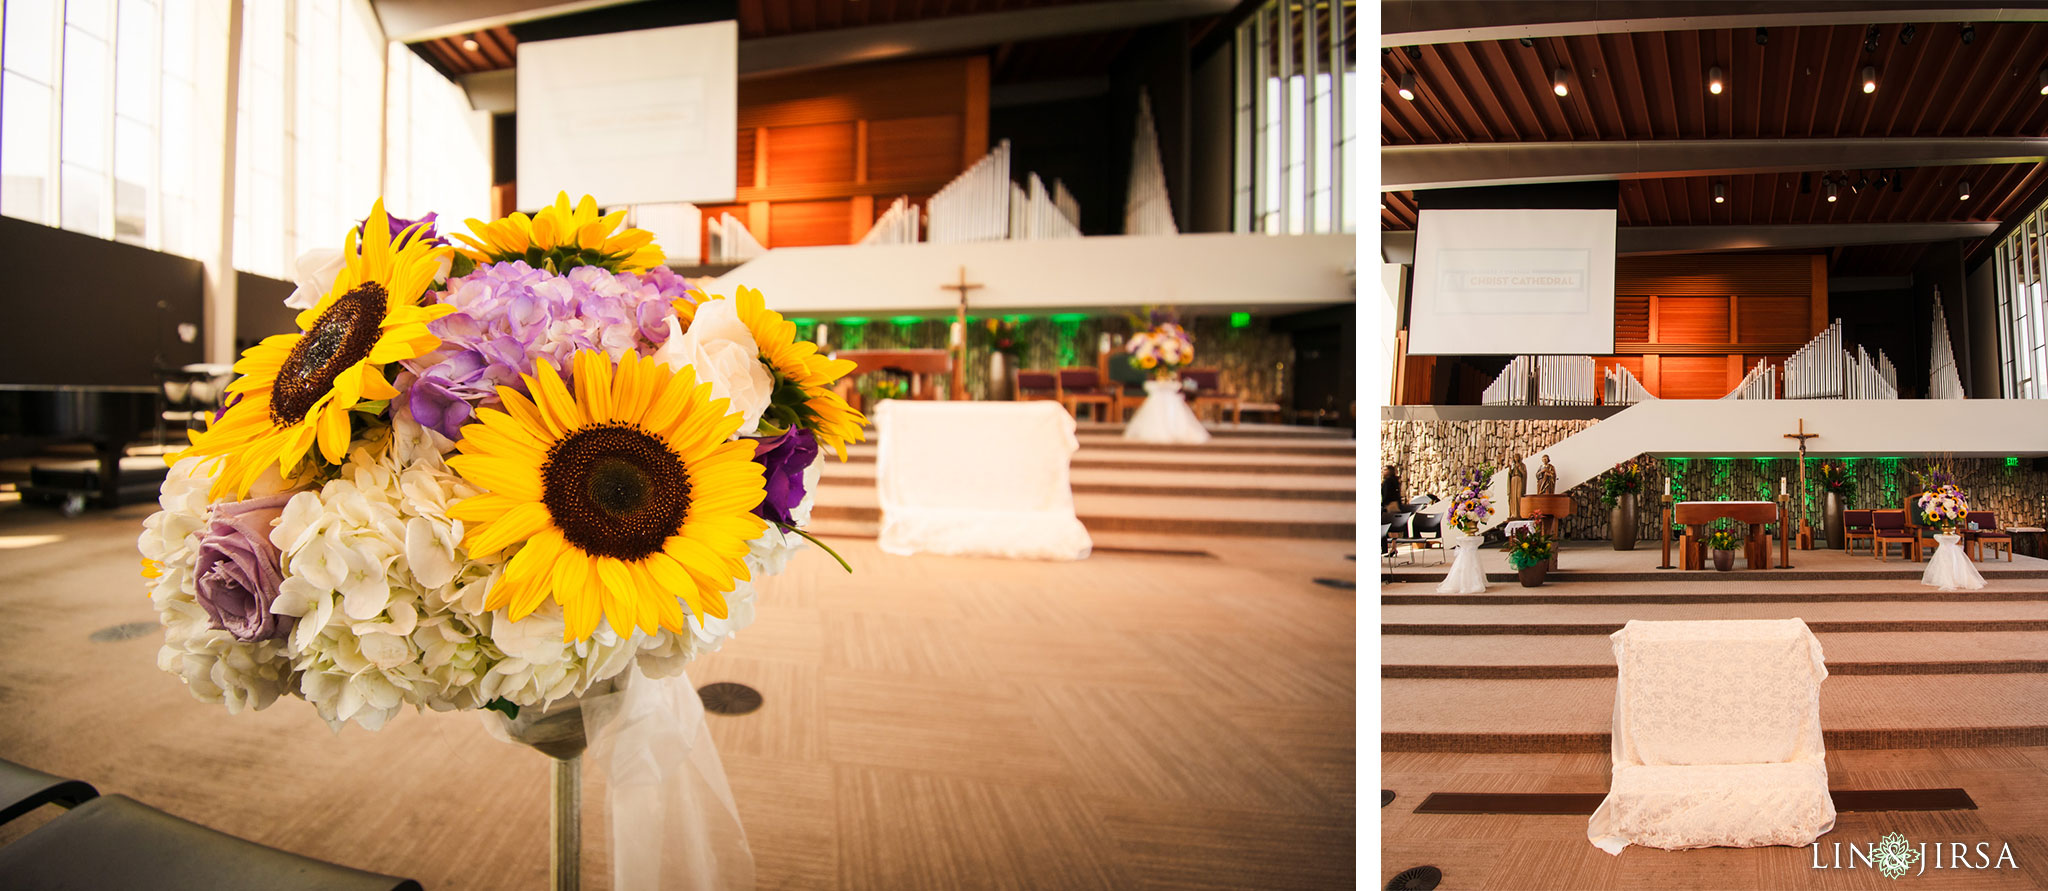 012 christ cathedral garden grove wedding ceremony photography